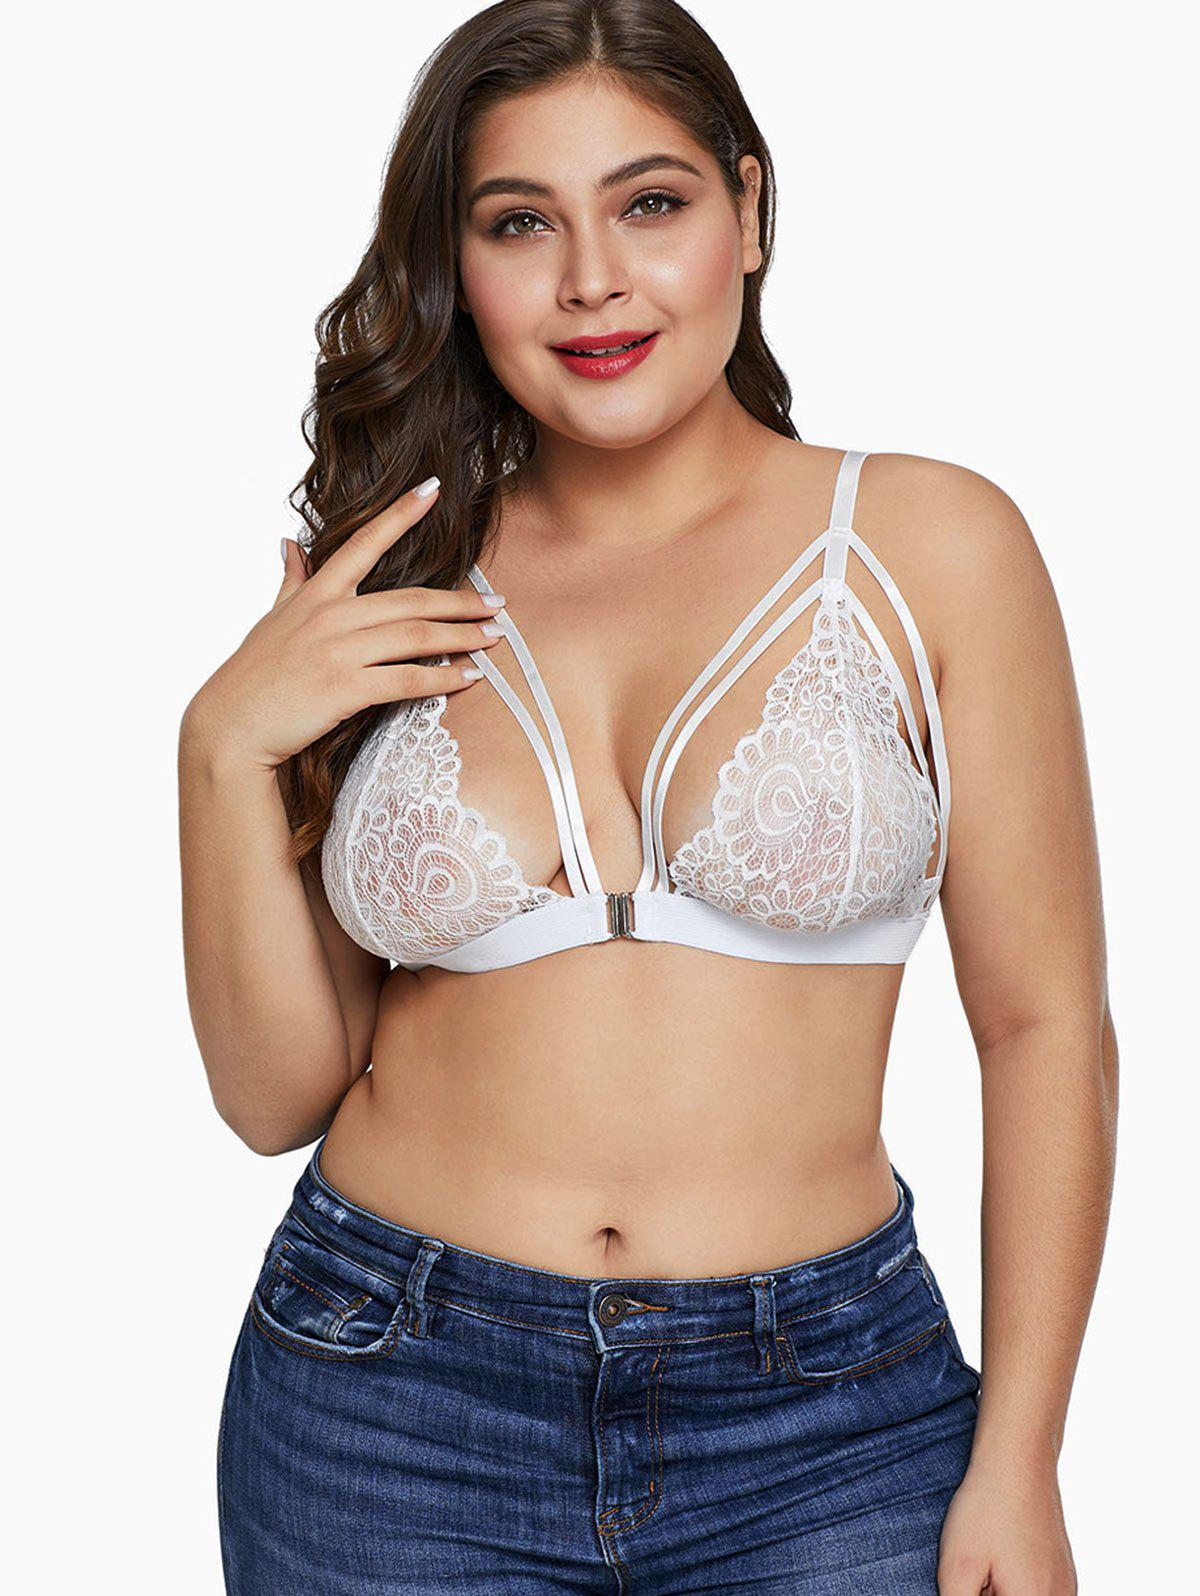 Unlined Plus Size Lace Bra